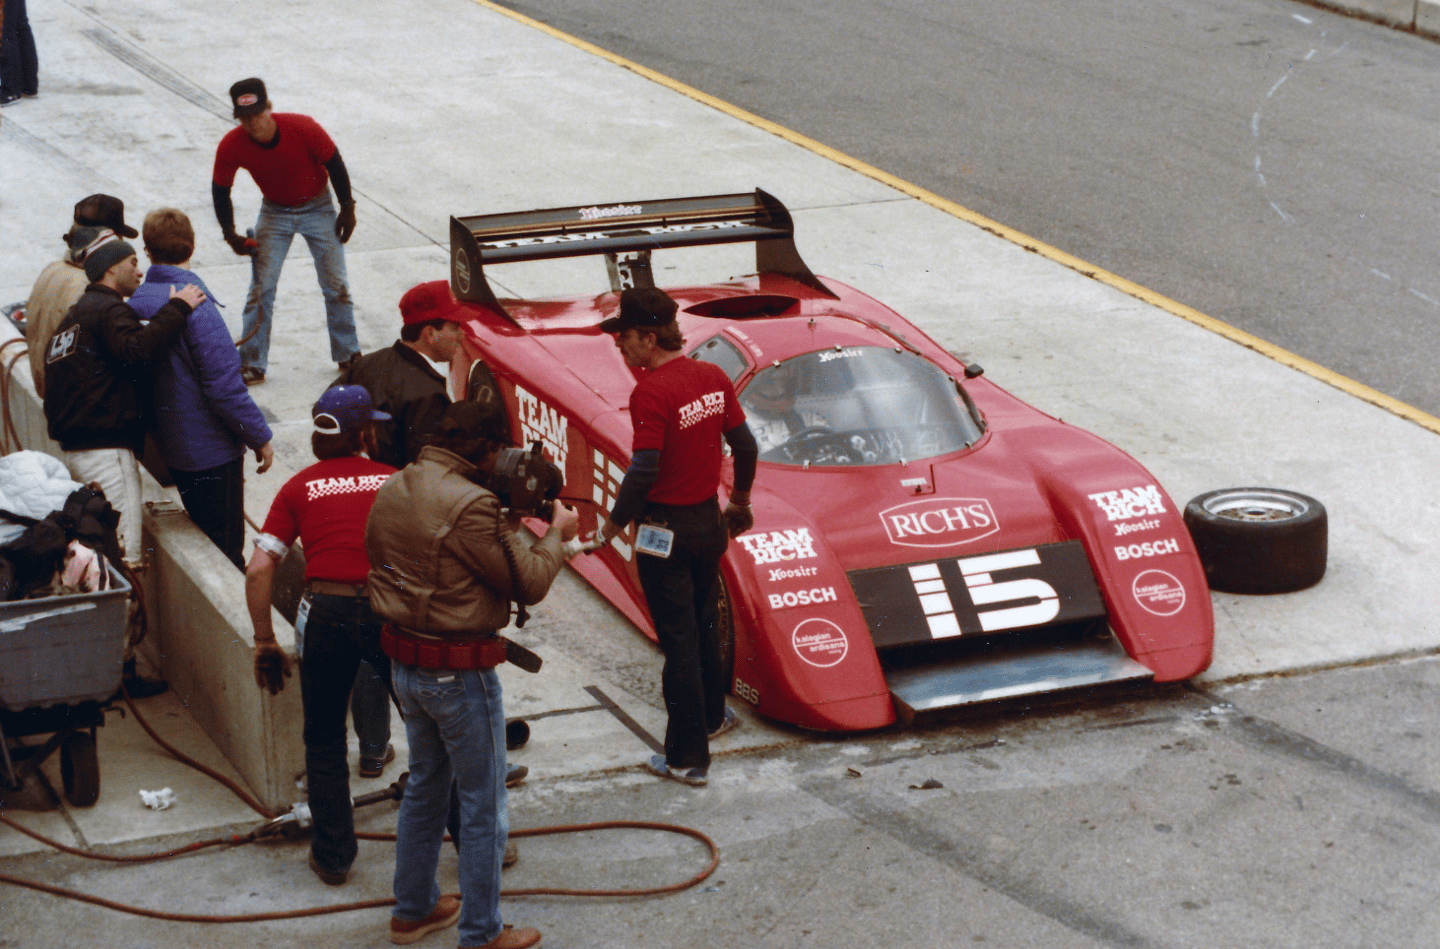 Although March's sports prototypes were overwhelmed by Porsche 962s in Group C racing in Europe, in Chevrolet V8-engined form they were popular choices for the IMSA GTP series in the USA, winning the IMSA titles in 1983 and 1984. The March 84G Chevrolet is, arguably, the best of the Adrian Newey-designed March GTP Sports Prototypes of its era. Only seven 84G models were built. Adrian Newey went on to become the most successful racing car designer in Formula One history, and is currently the chief technical officer of the Red Bull Racing Formula One team.